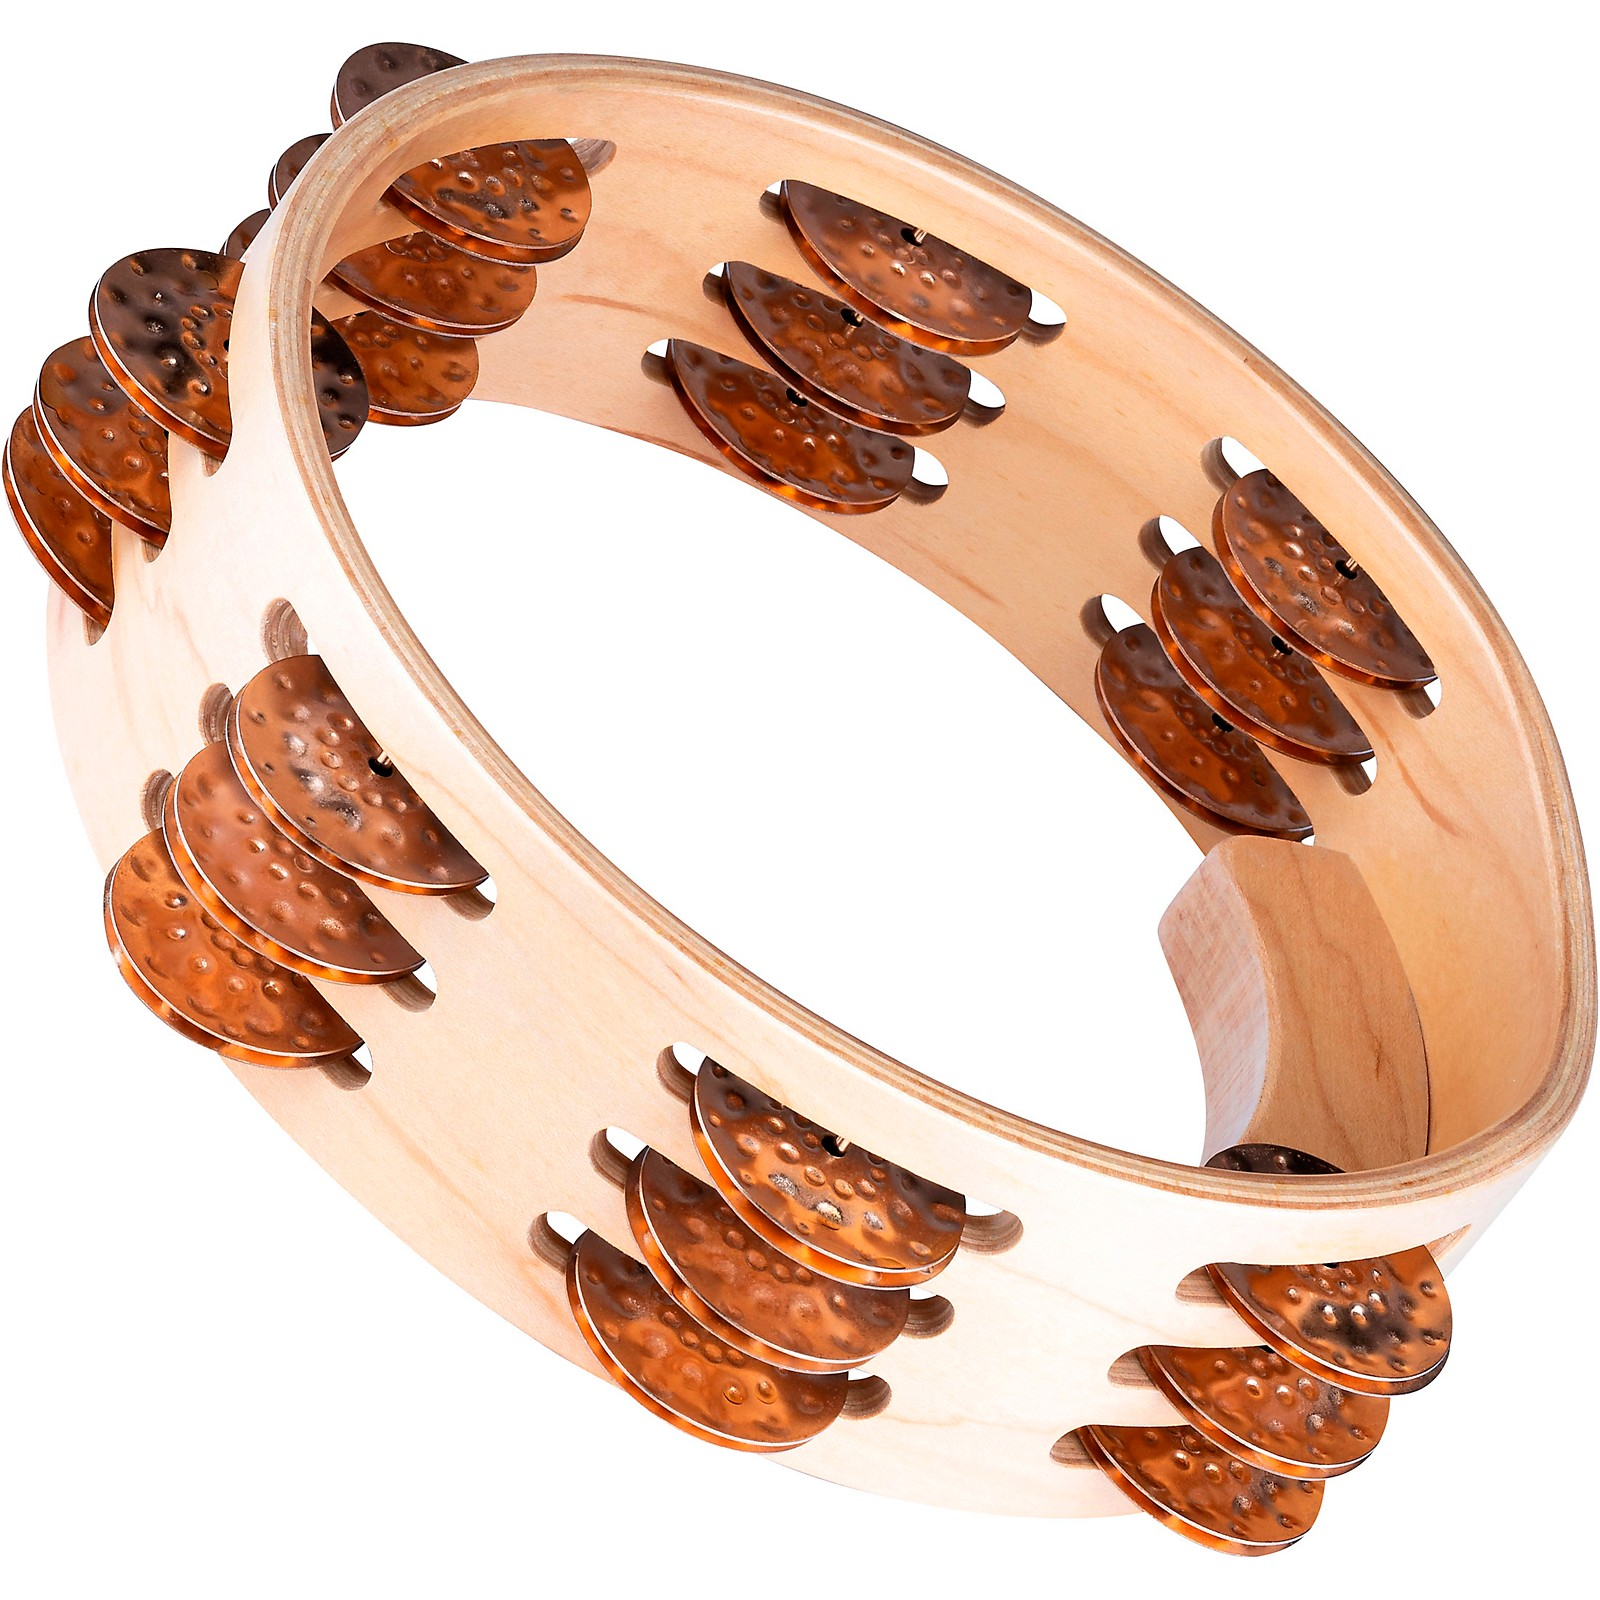 Meinl Artisan Compact Maple Wood Tambourine Three Rows